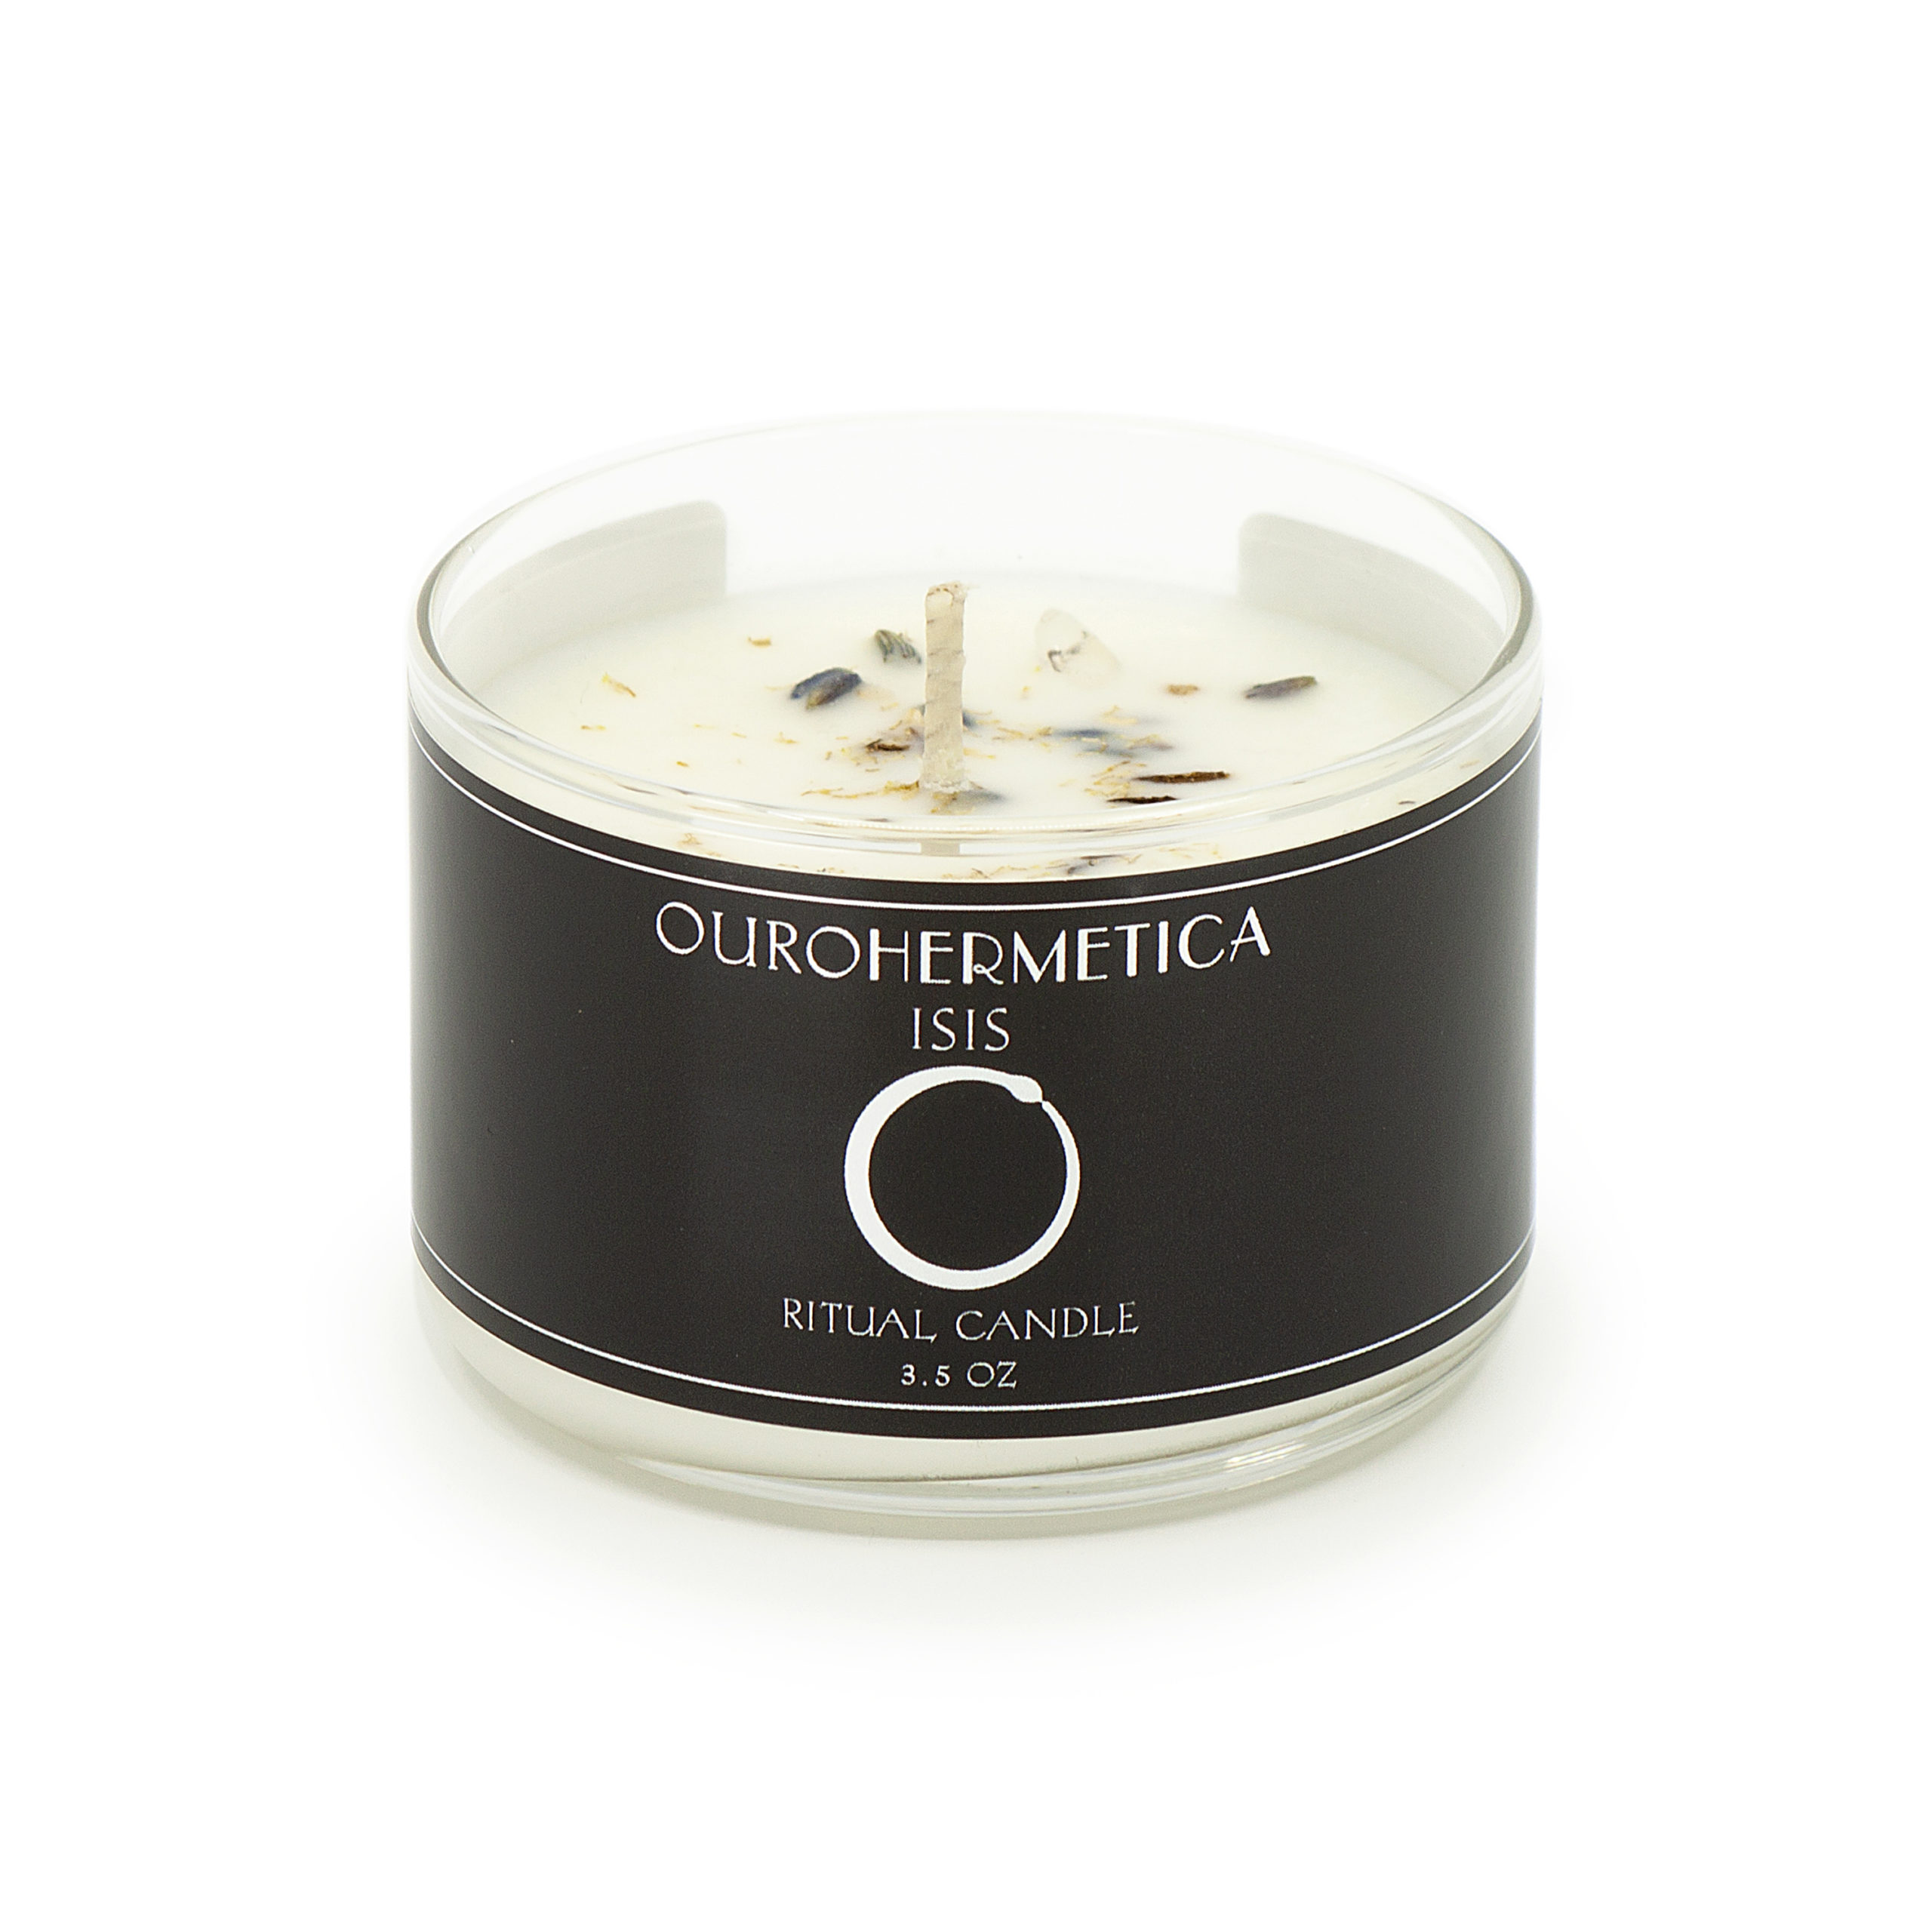 3.6 ounce candle in clear glass jar with black OuroHermetica label with white ouroboros icon